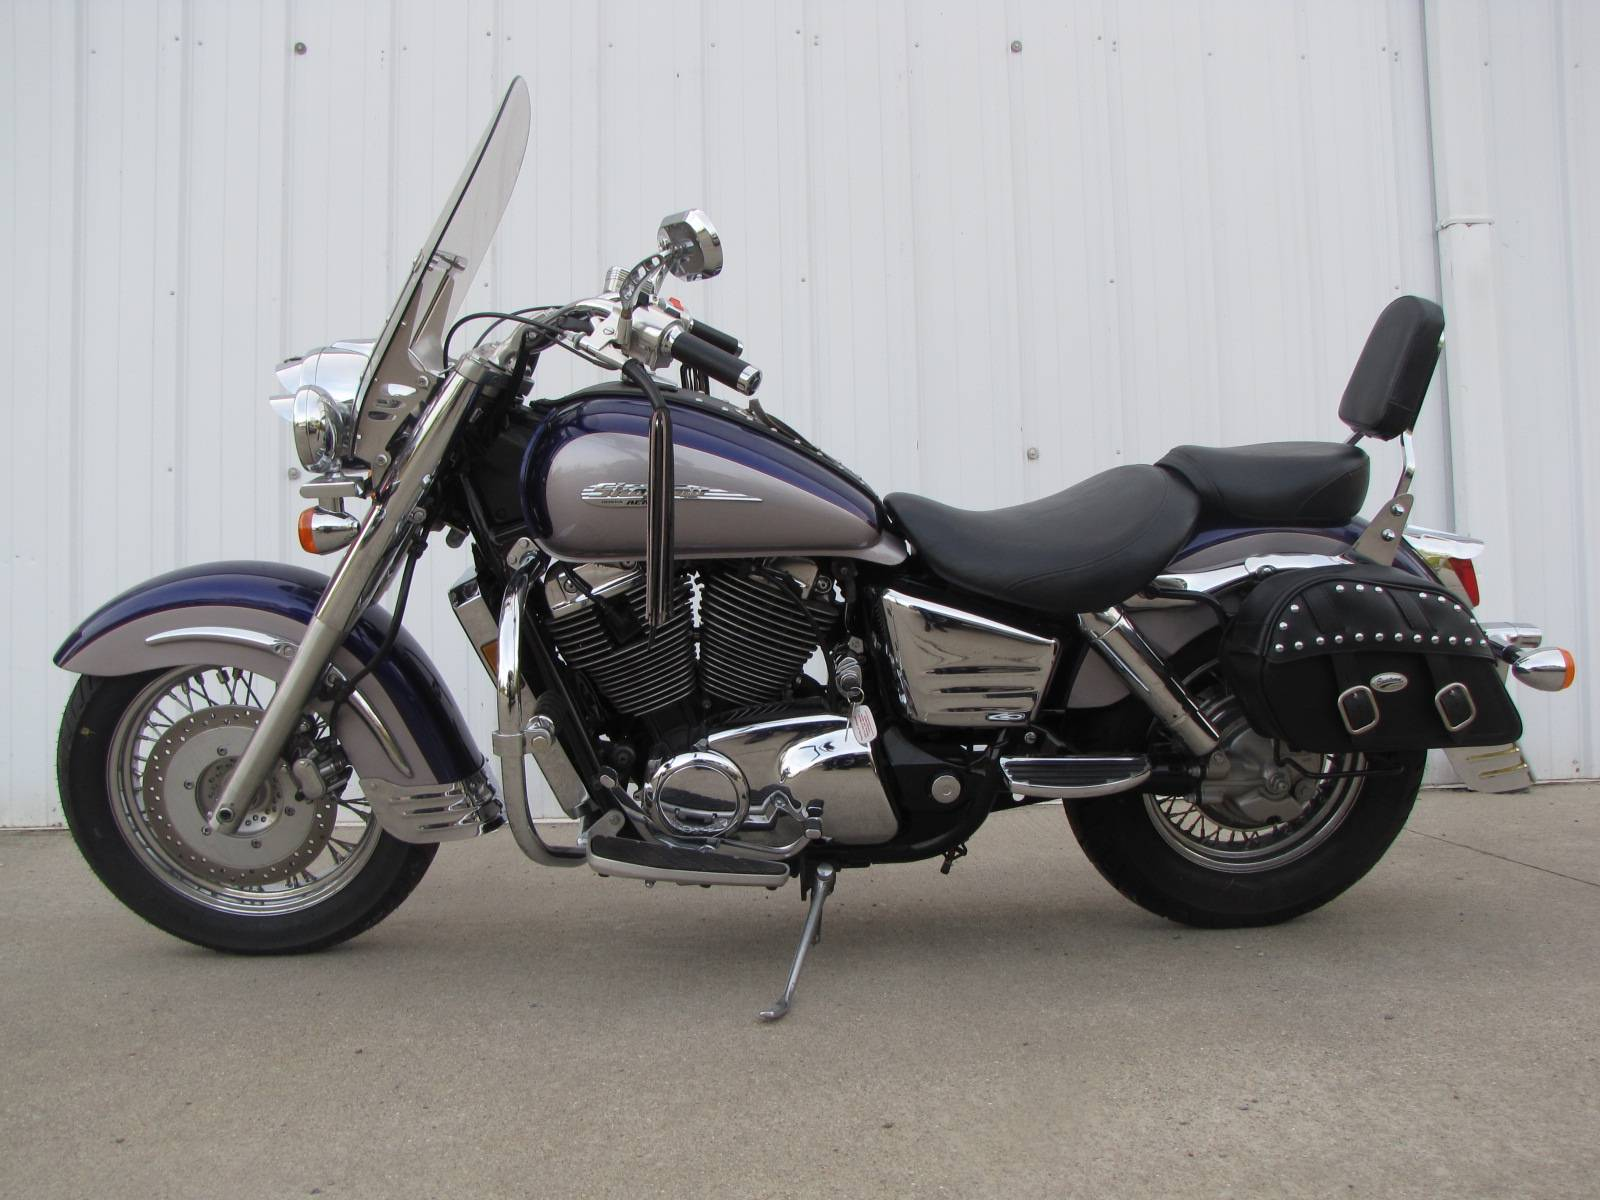 2002 Honda Shadow Aero in Ottawa, Ohio - Photo 1